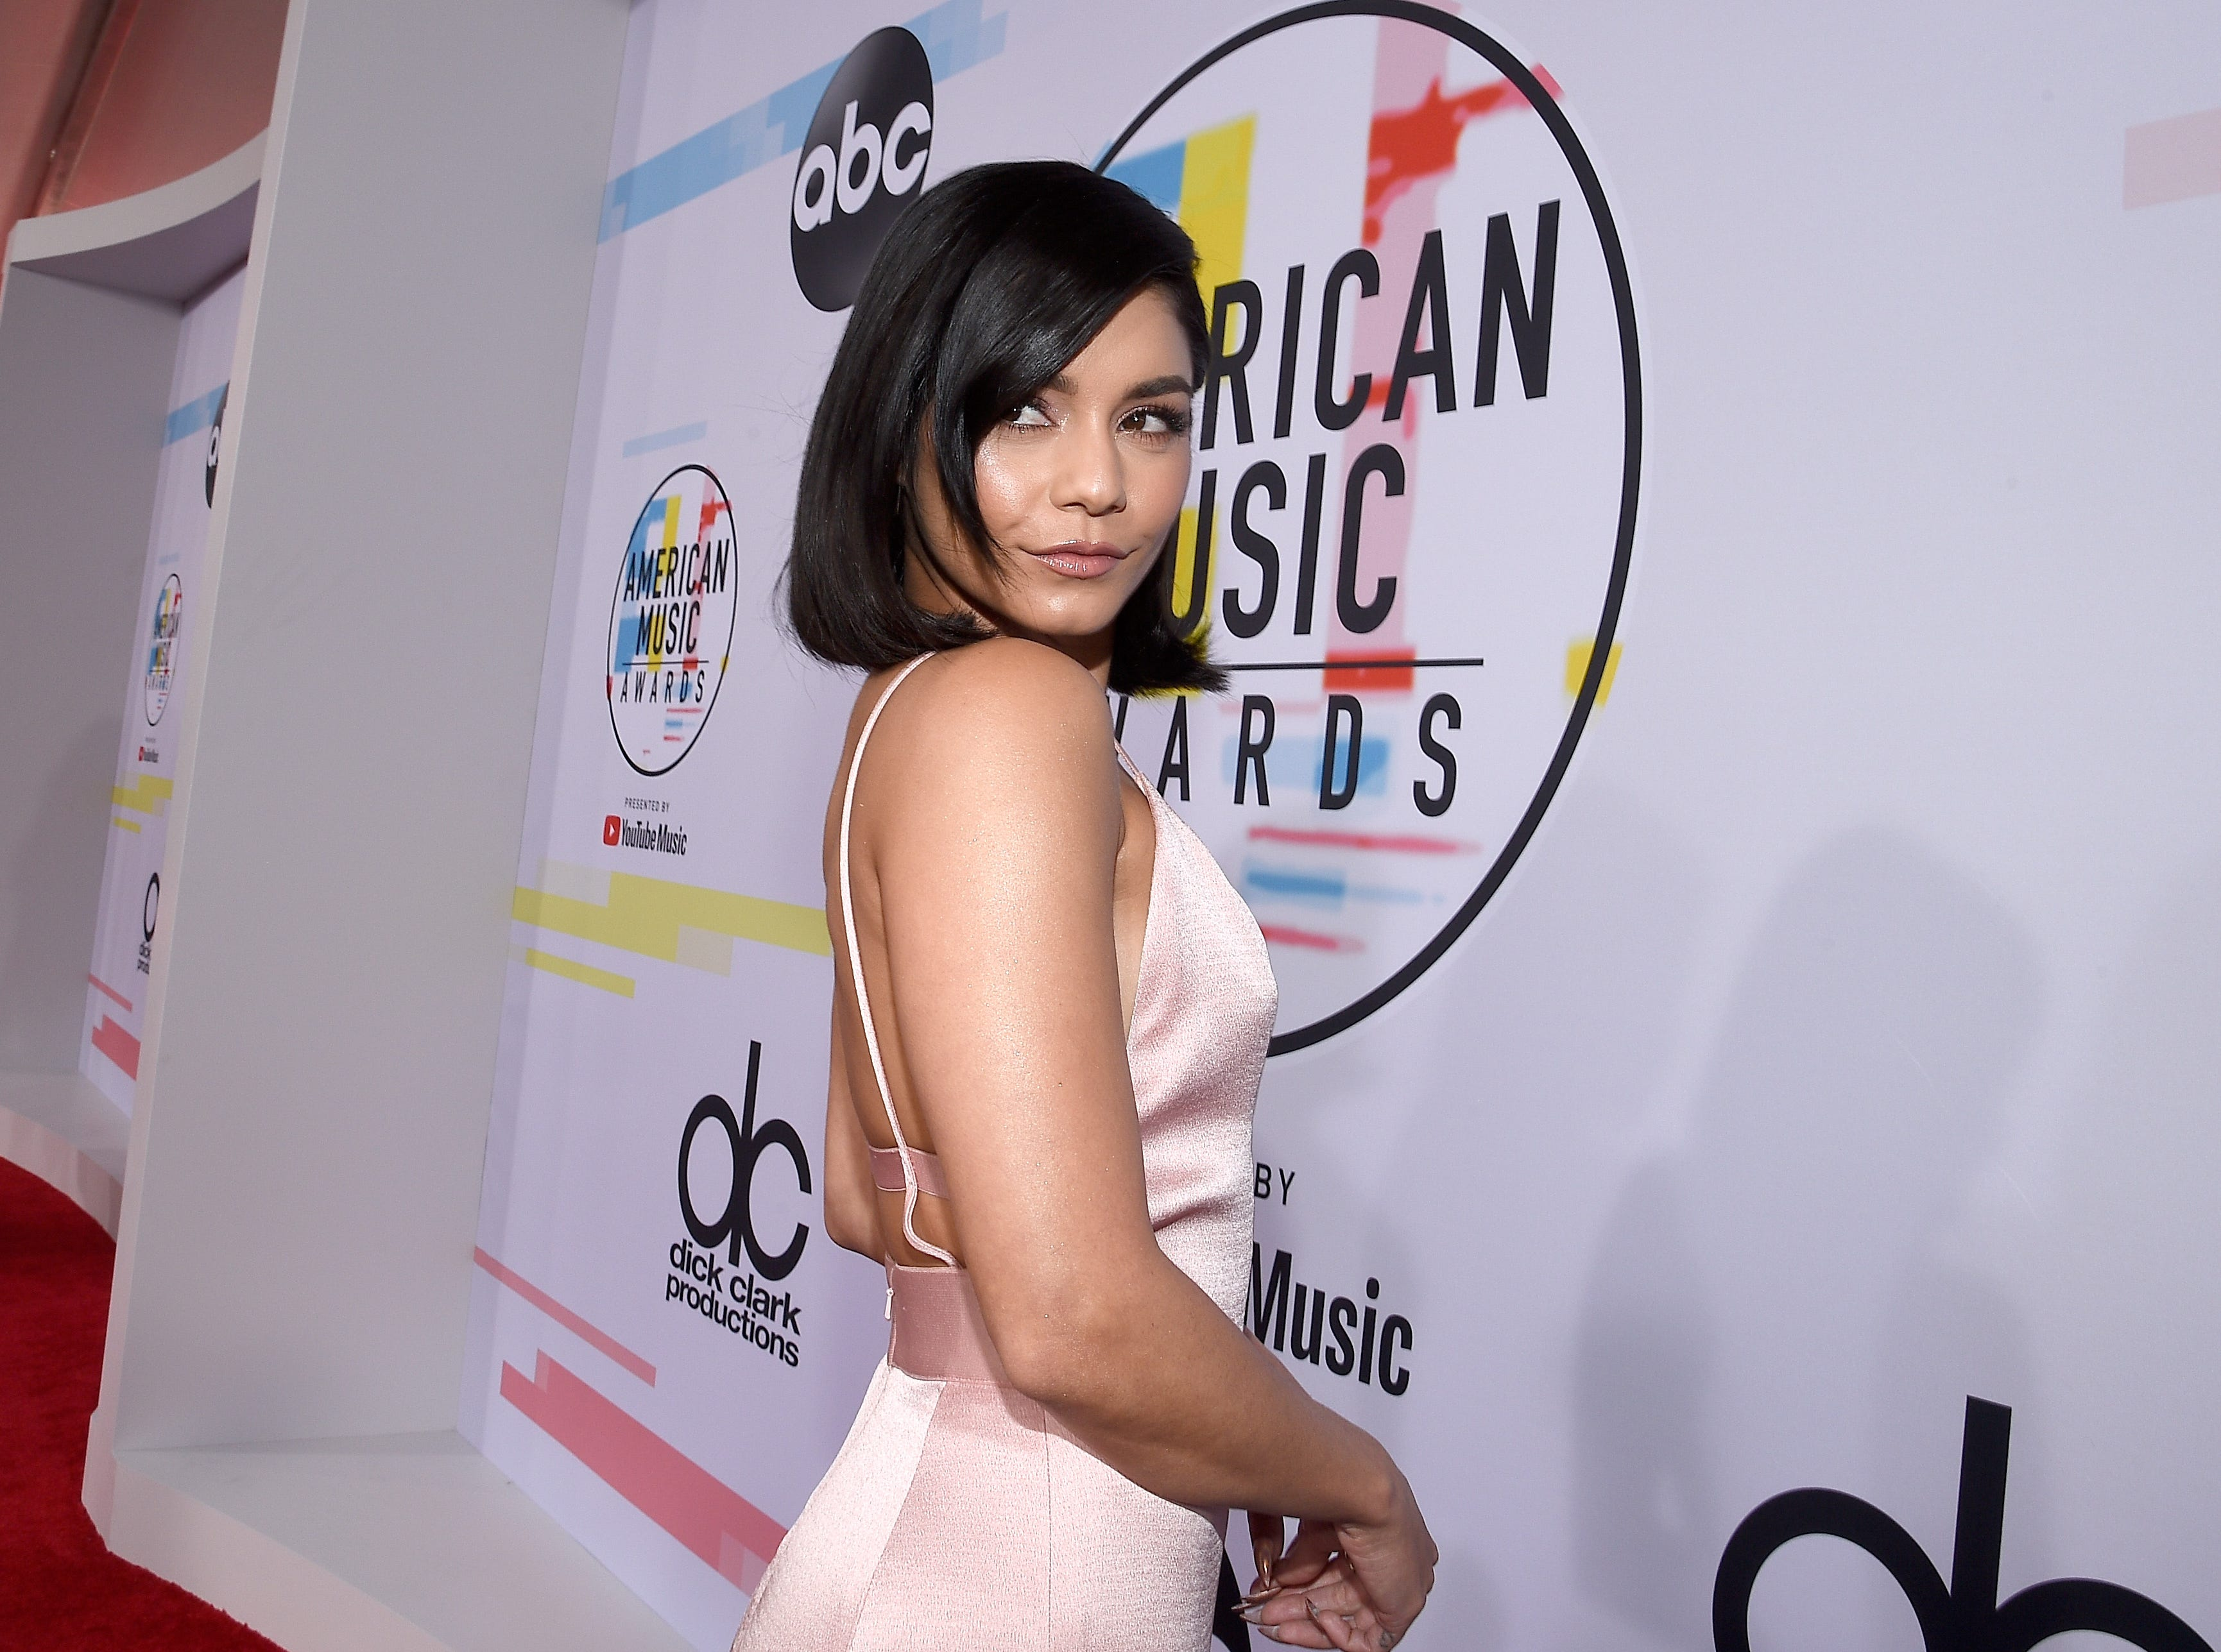 Vanessa Hudgens attends the 2018 American Music Awards at Microsoft Theater on October 9, 2018 in Los Angeles, California.